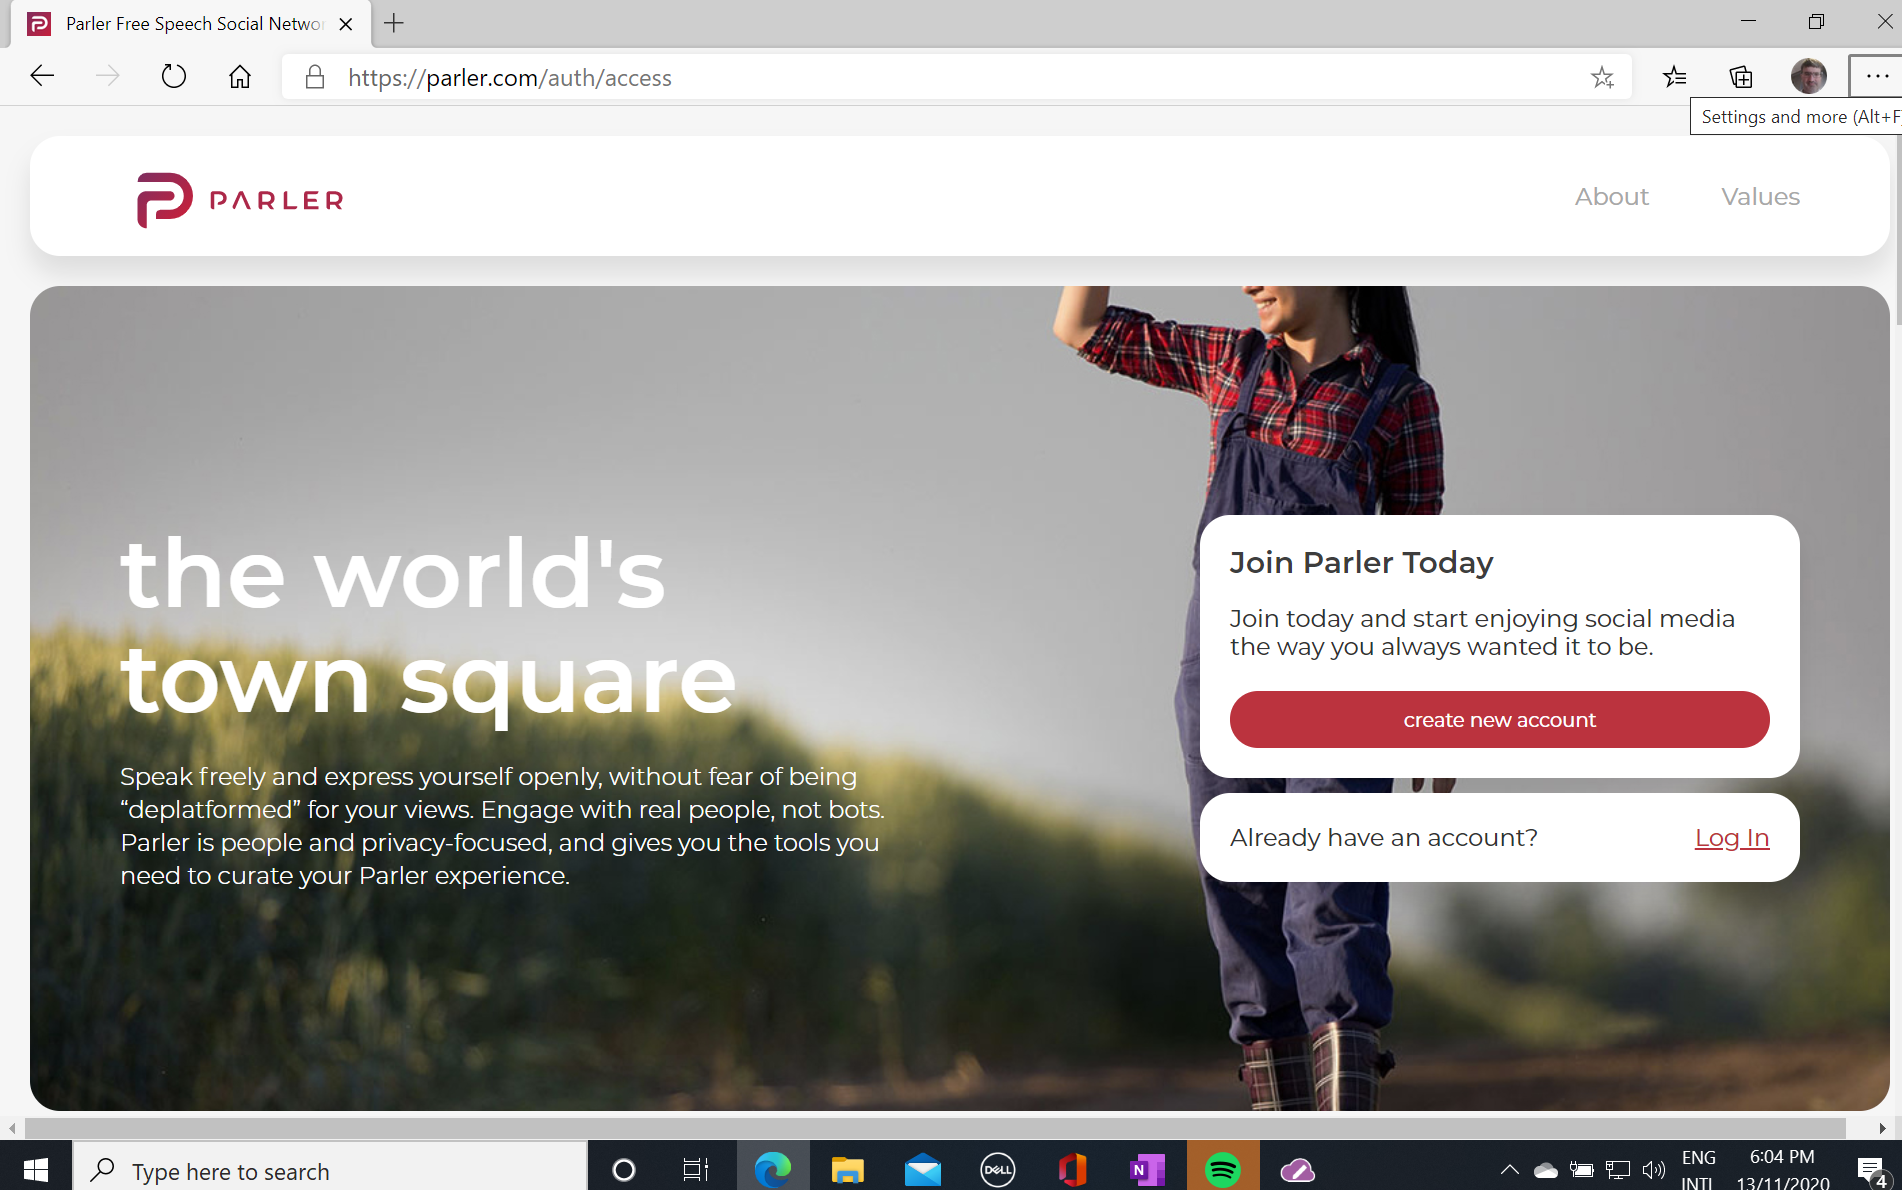 Parler login page screenshot